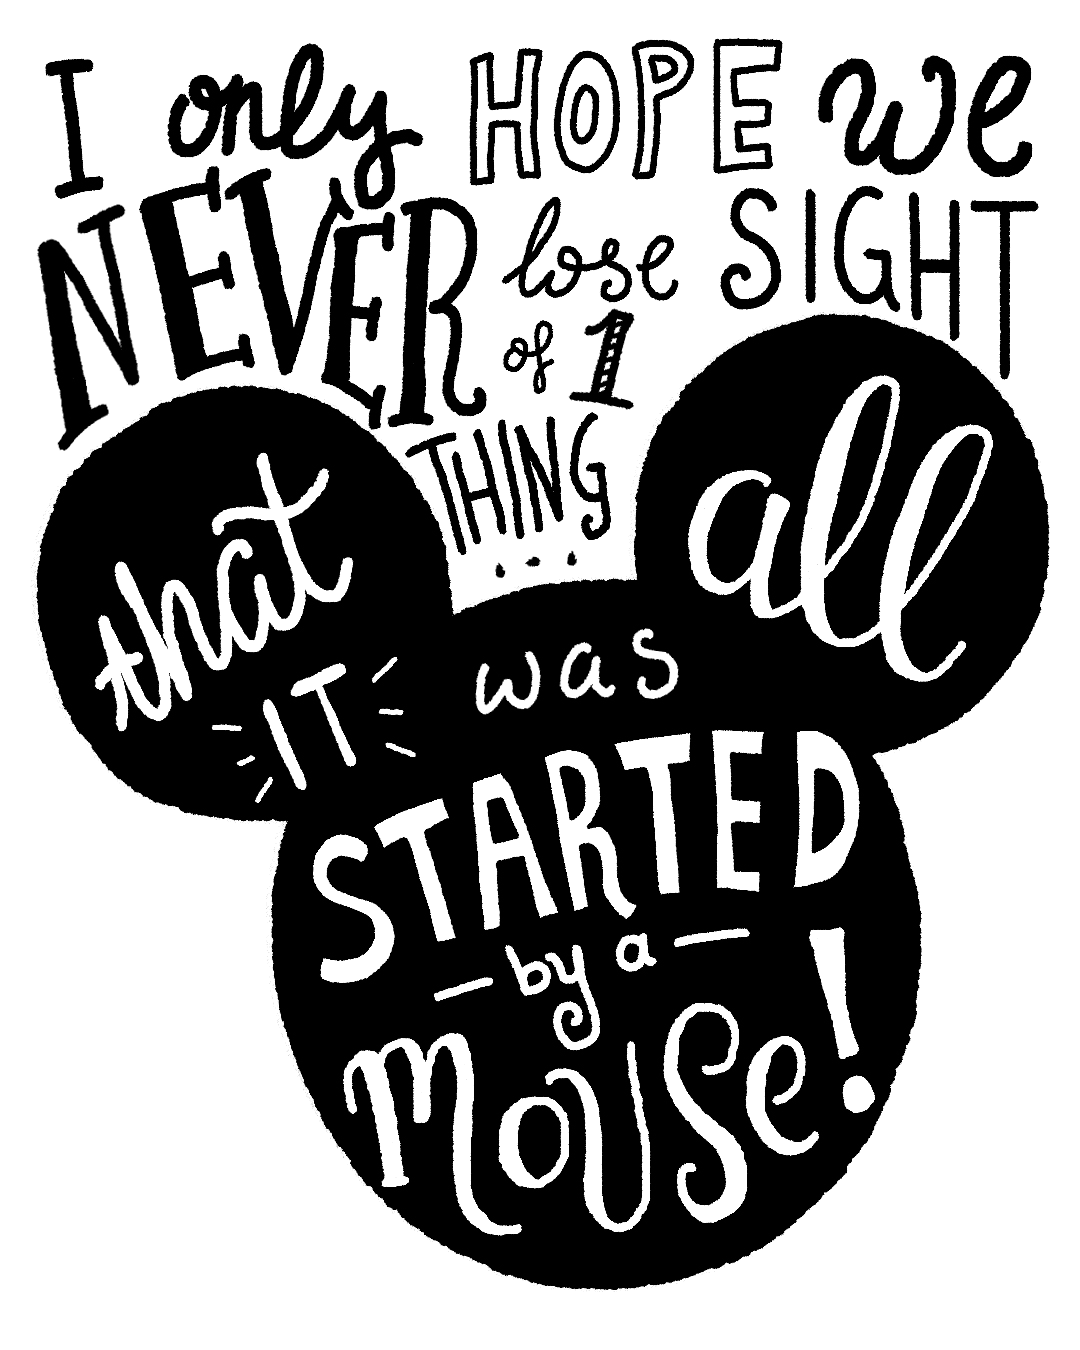 It Was All Started by a Mouse!